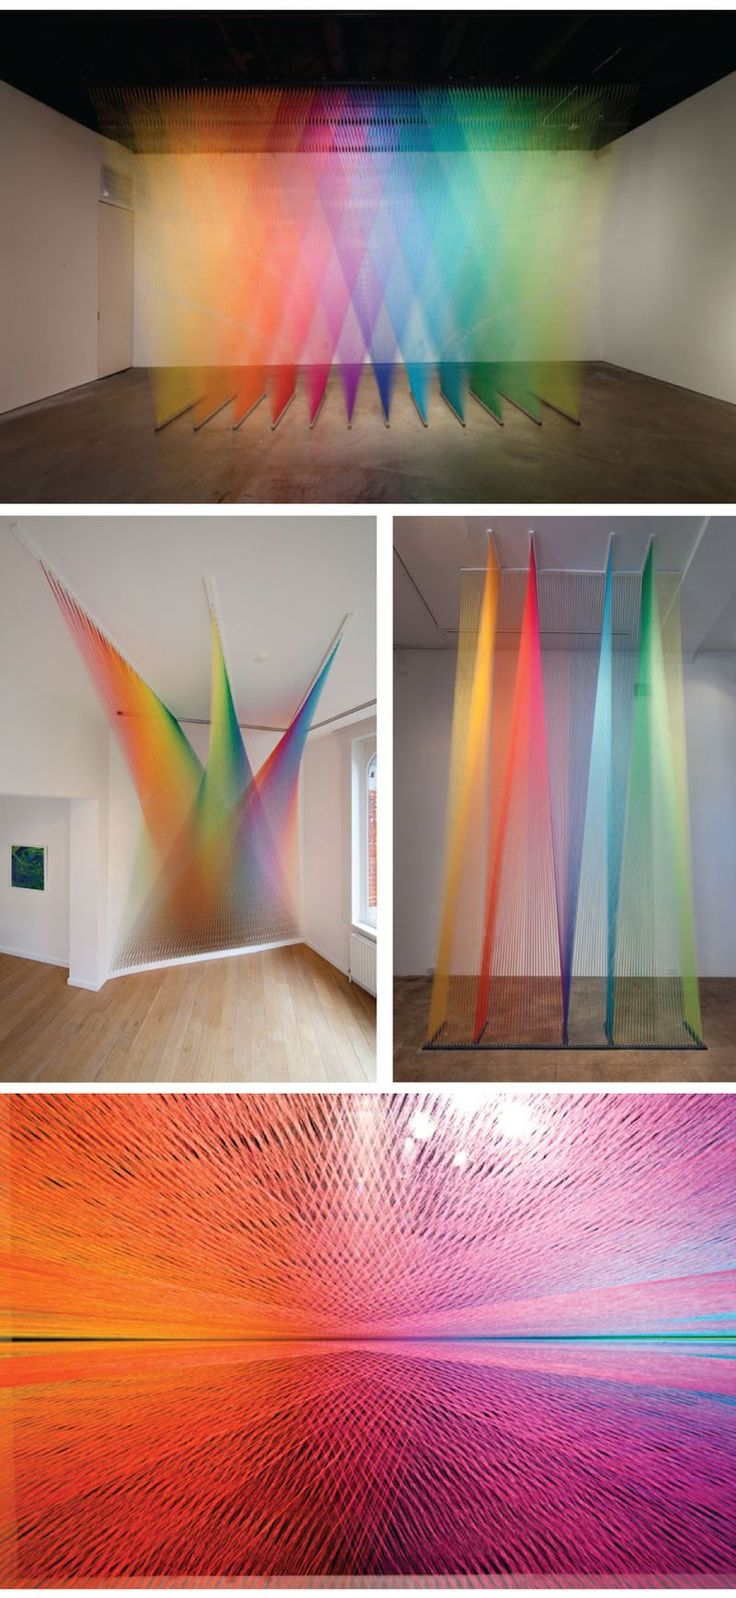 Coloured Thread Installations by Gabriel Dawe.